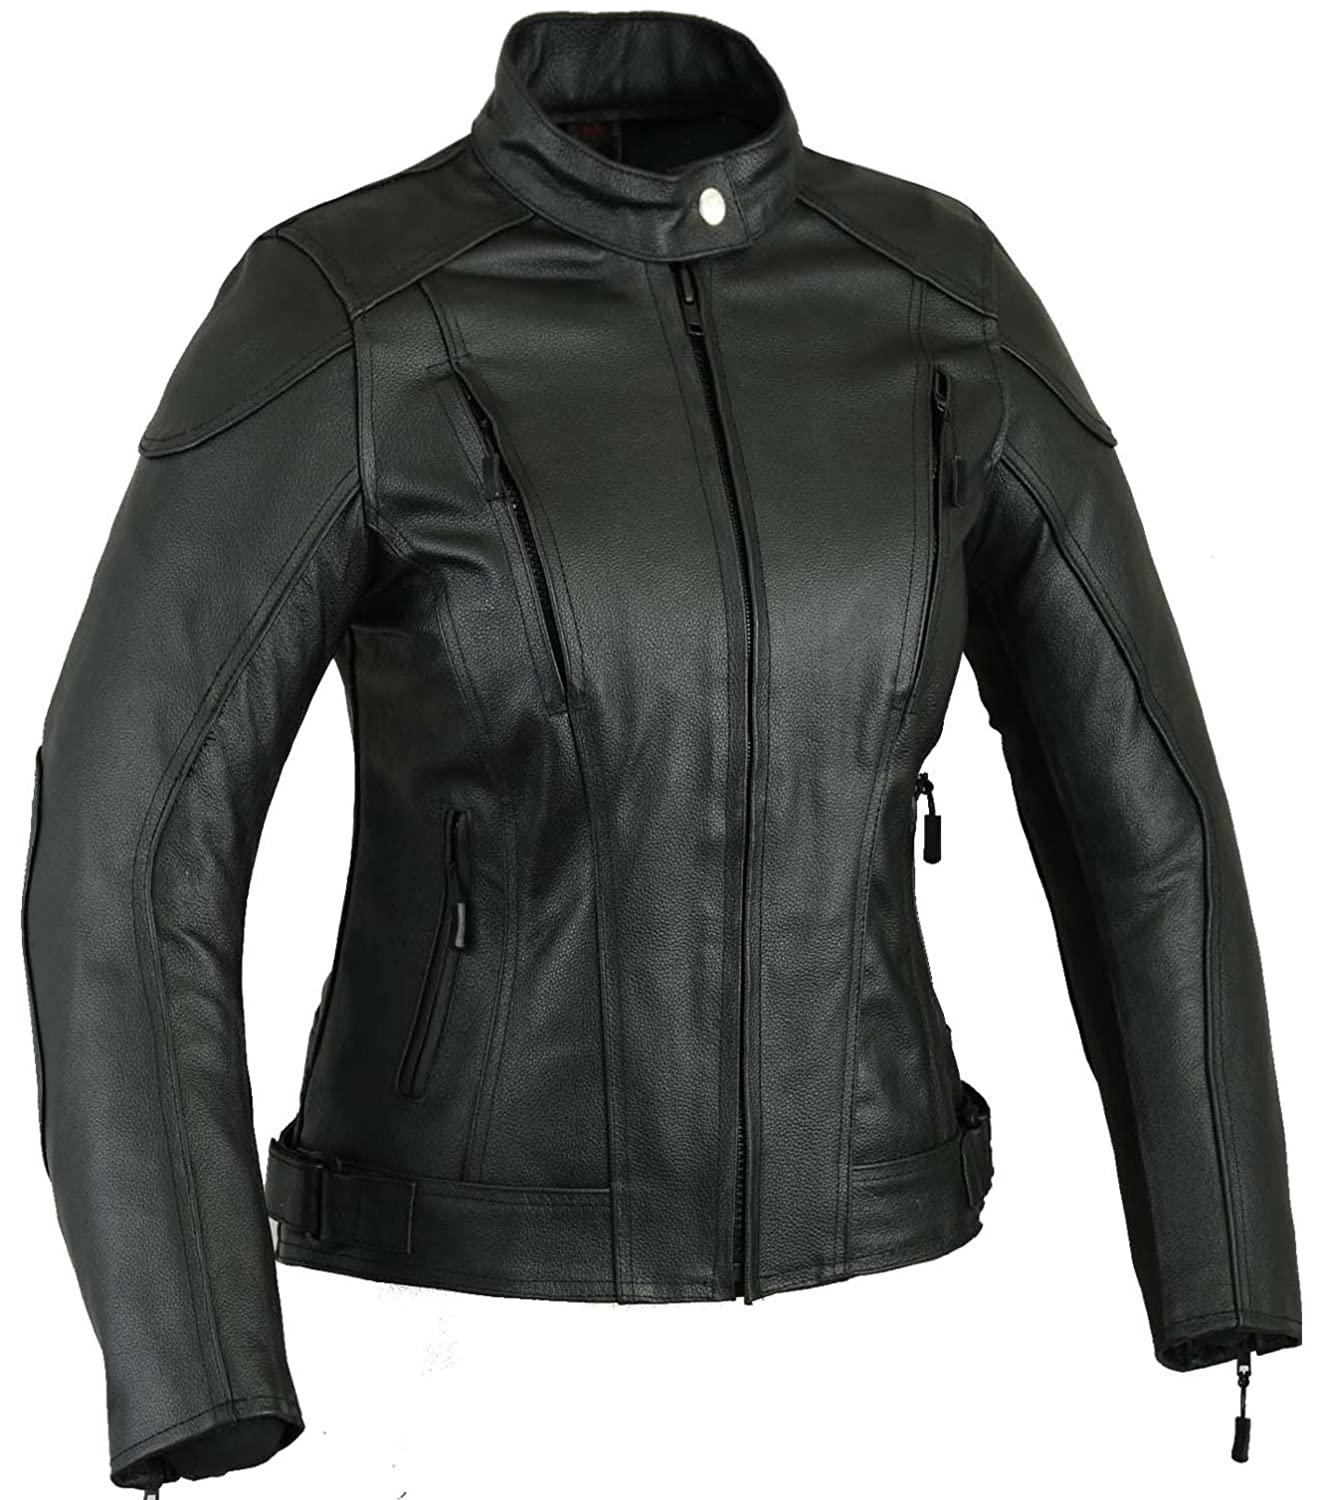 Impact donne Pelle motocicletta Giacca Motociclo Cappotto, S GearX